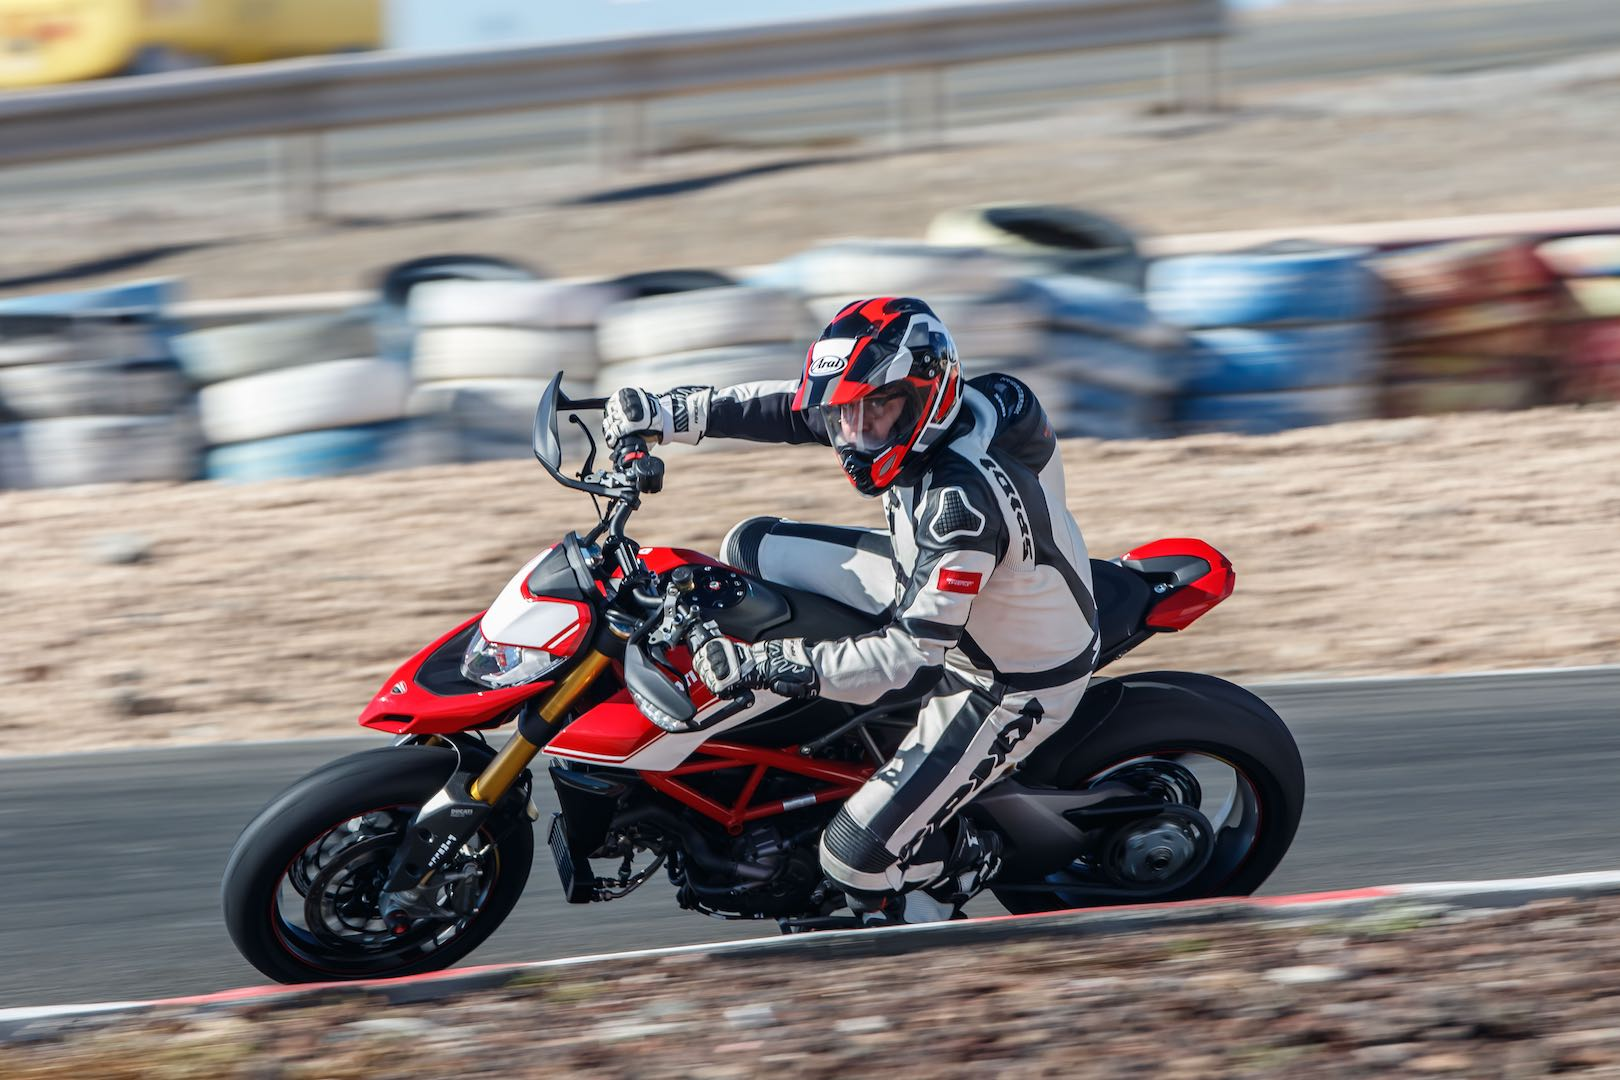 2019 Ducati Hypermotard 950 950 Sp Review 26 Fast Facts